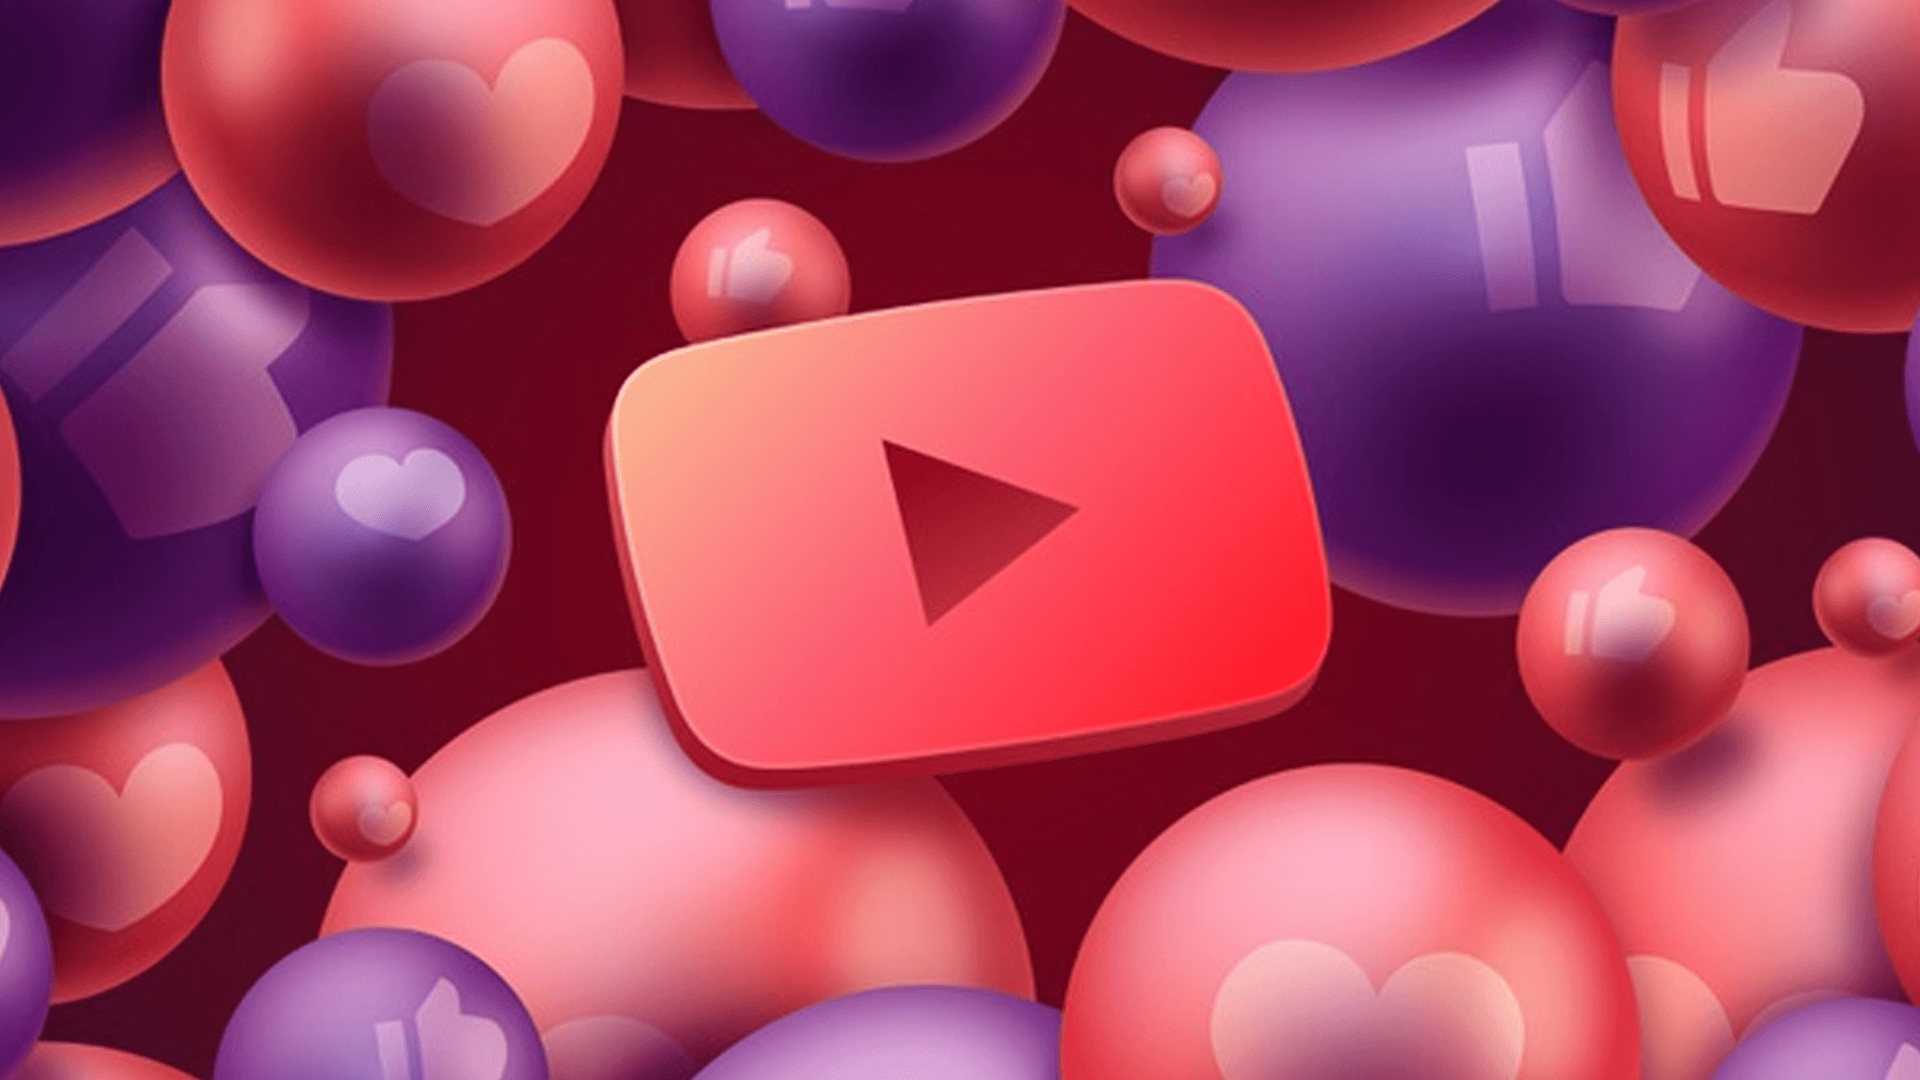 YouTube | Article about the promotion of the YouTube channel